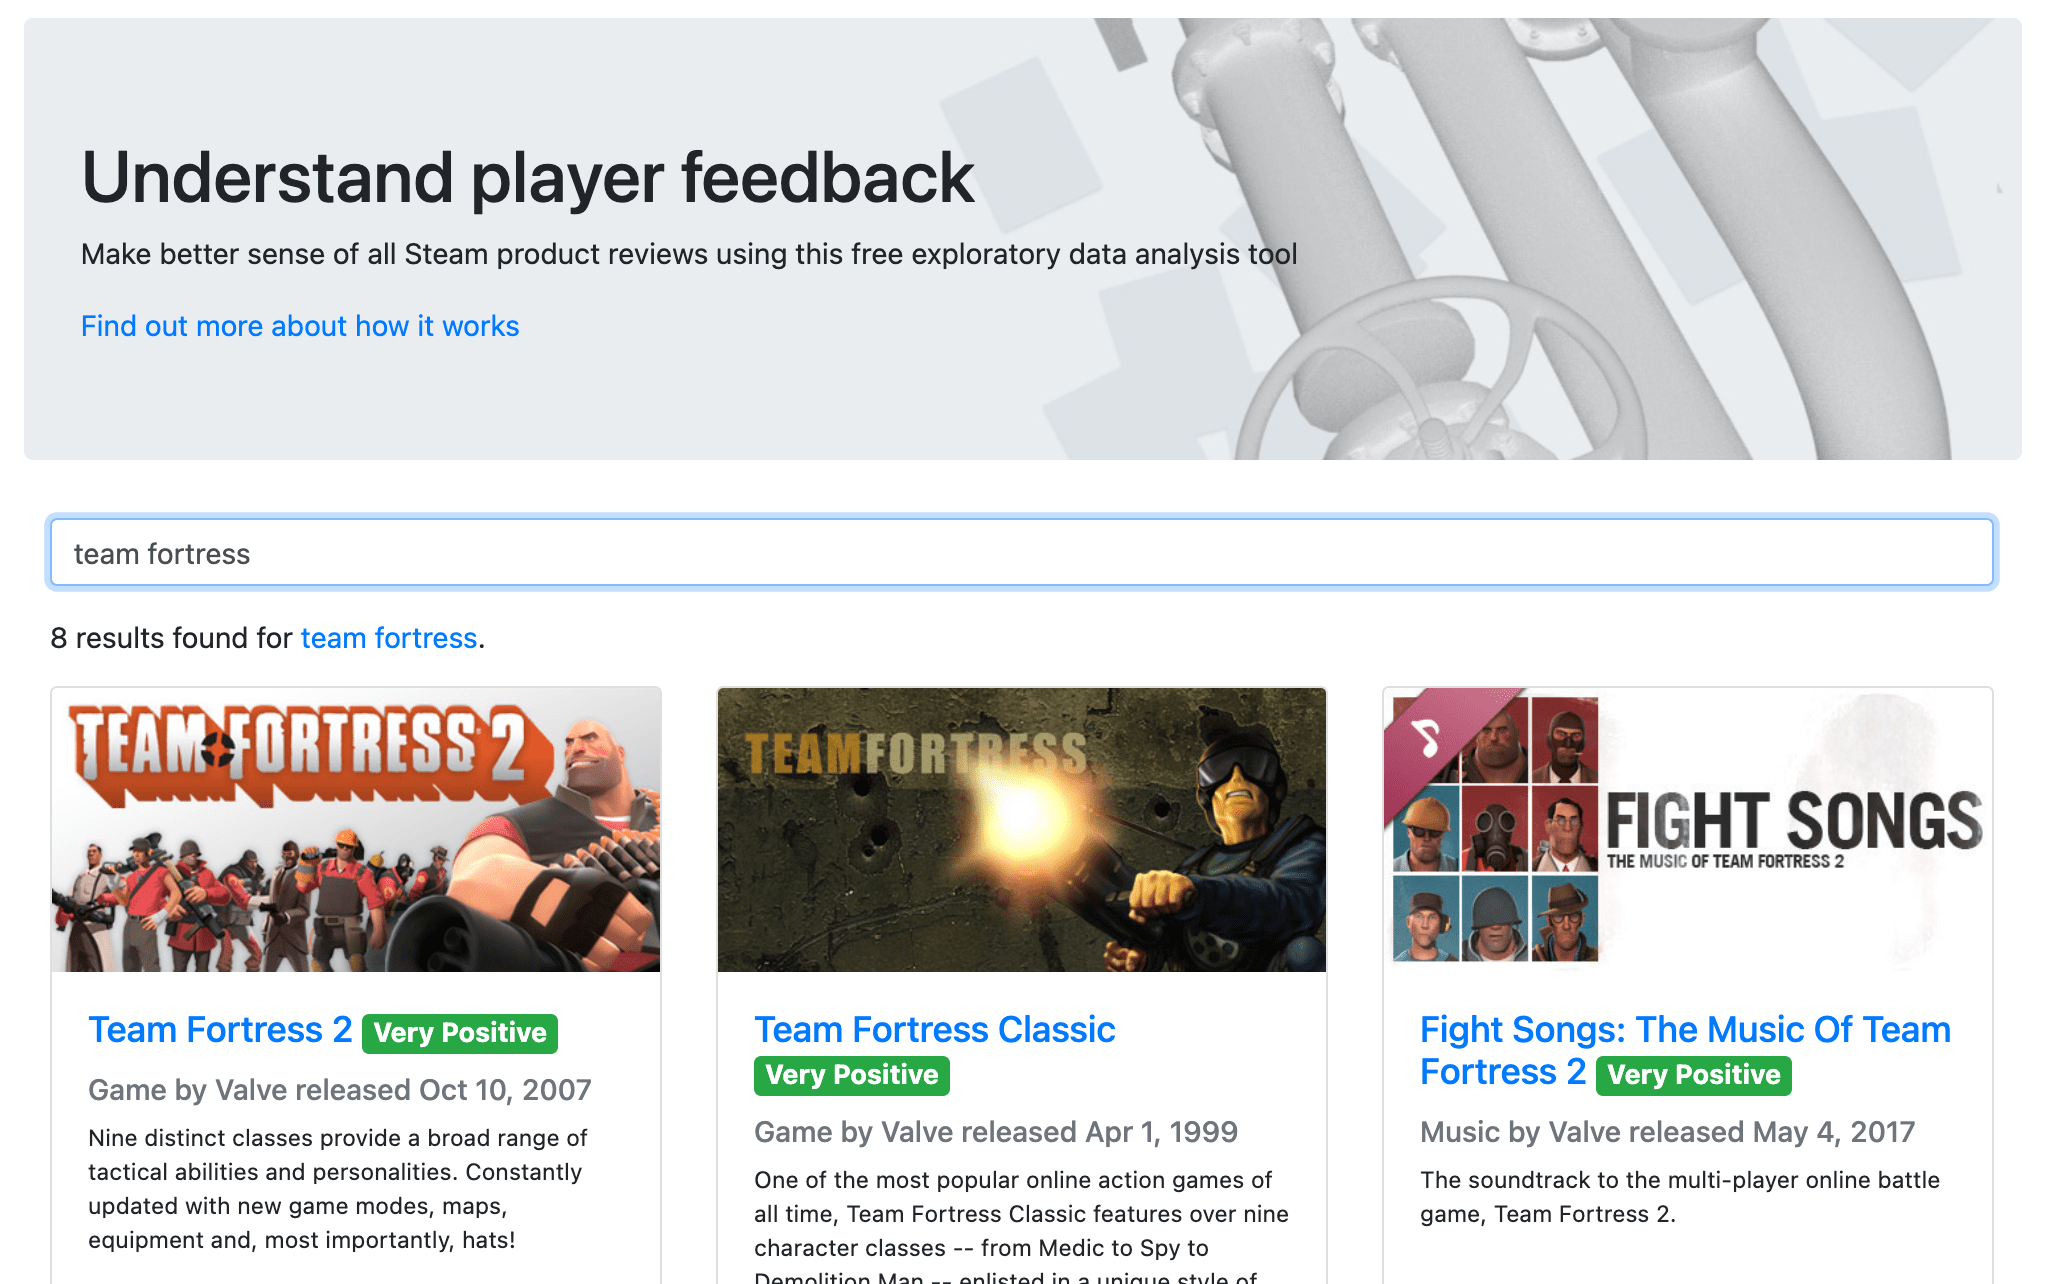 A screenshot of the Steam review explorer's home page